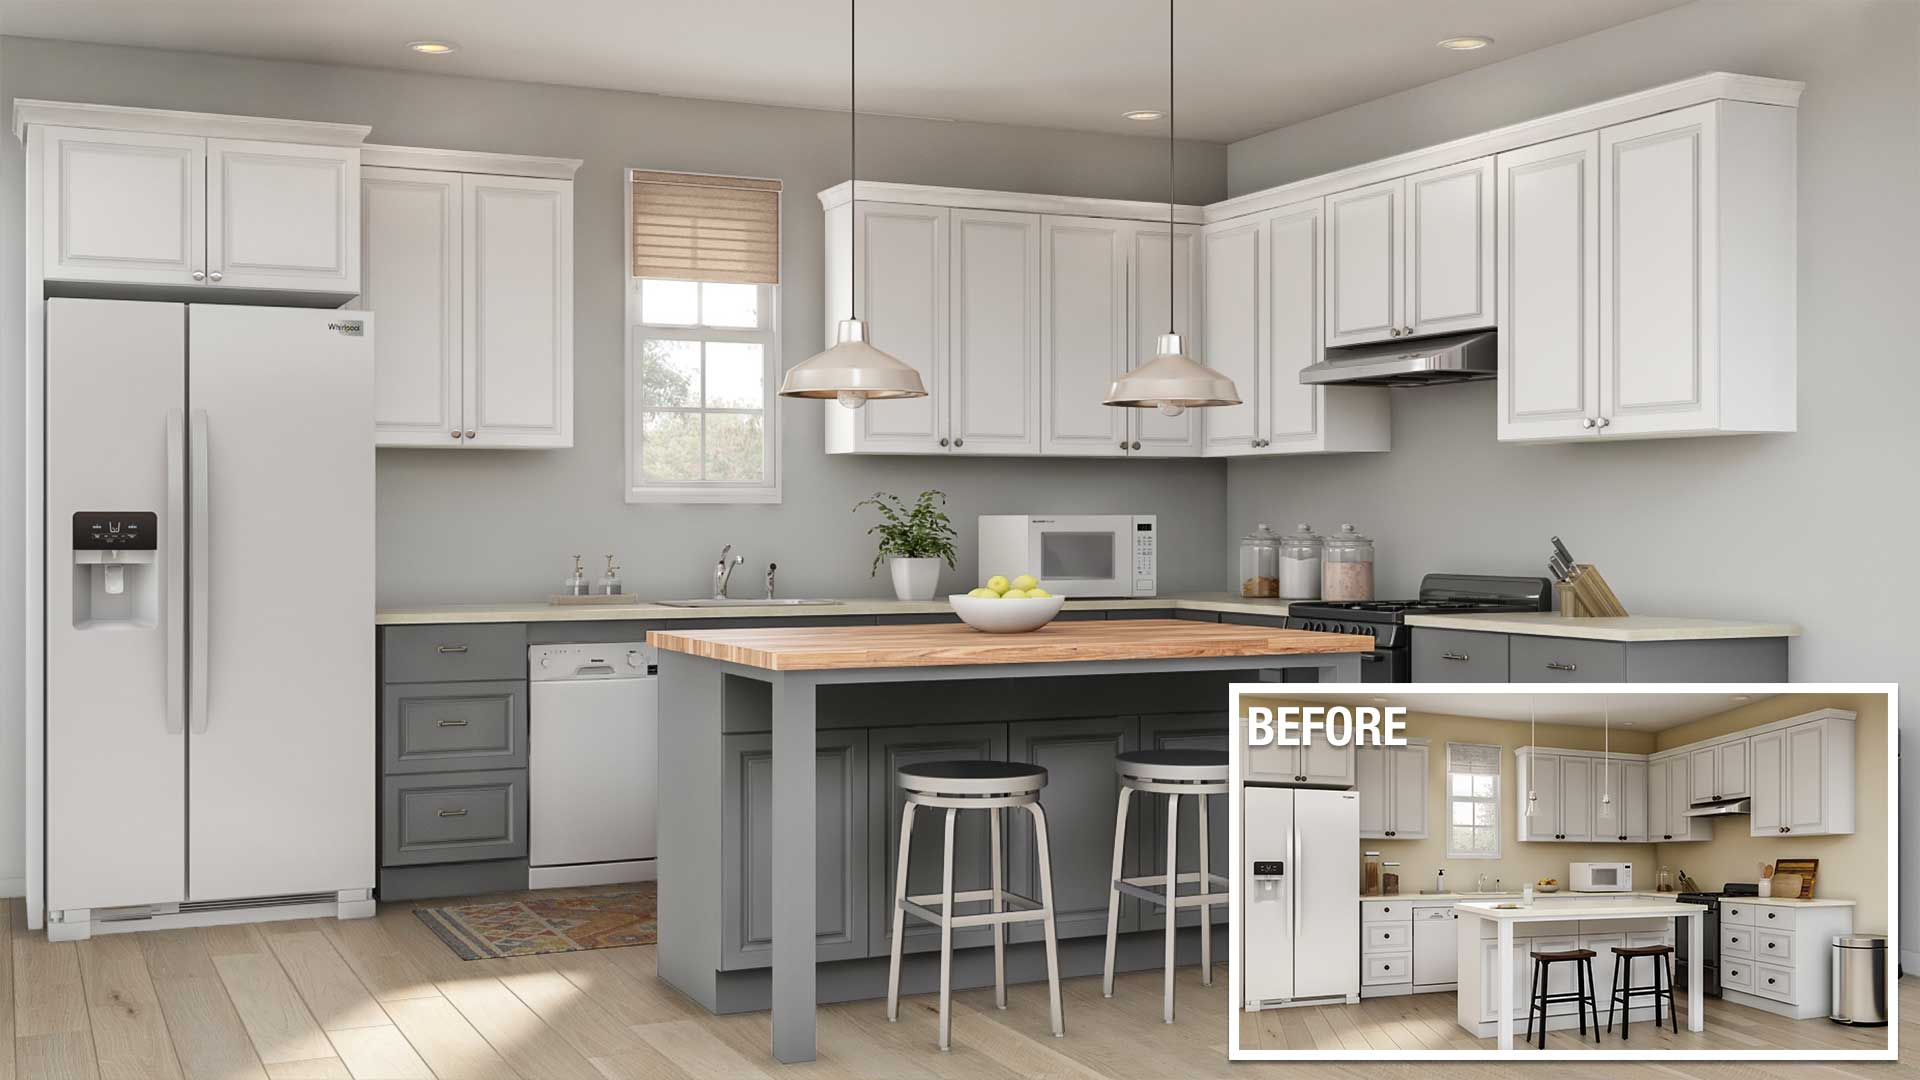 Kitchen Redesign Pictures Cost To Remodel A Kitchen The Home Depot